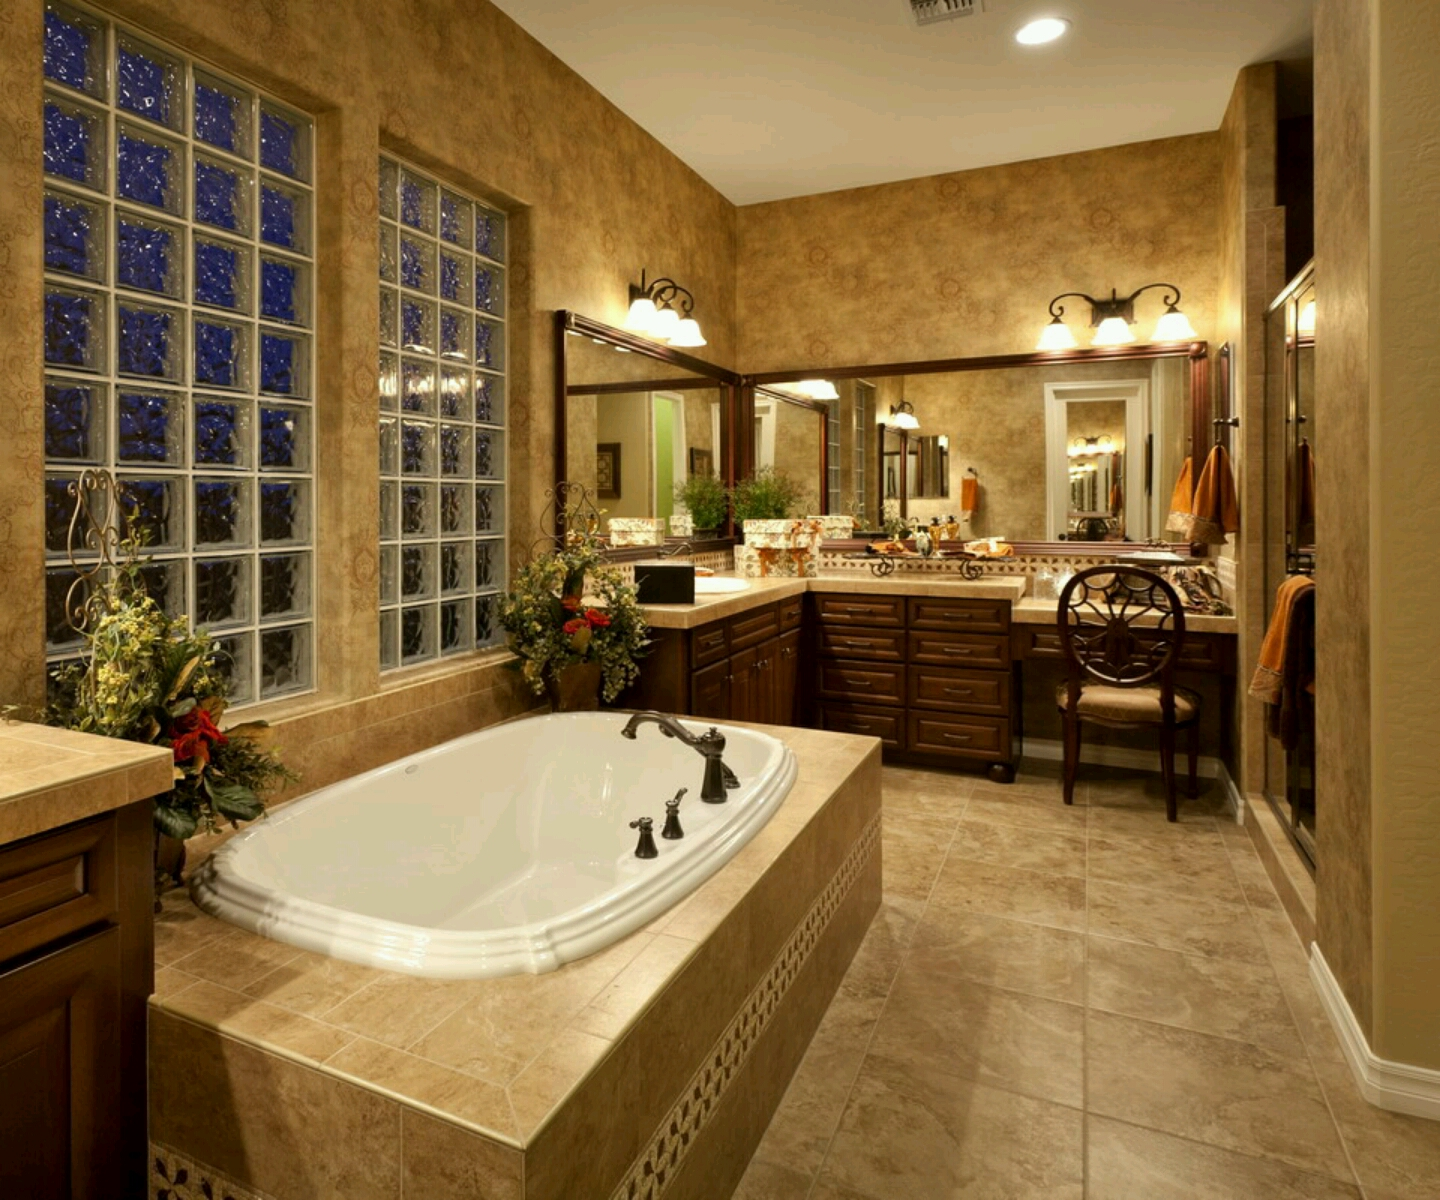 Modern Homes Modern Bathrooms Designs Ideas: Luxury Modern Bathrooms Designs Ideas.